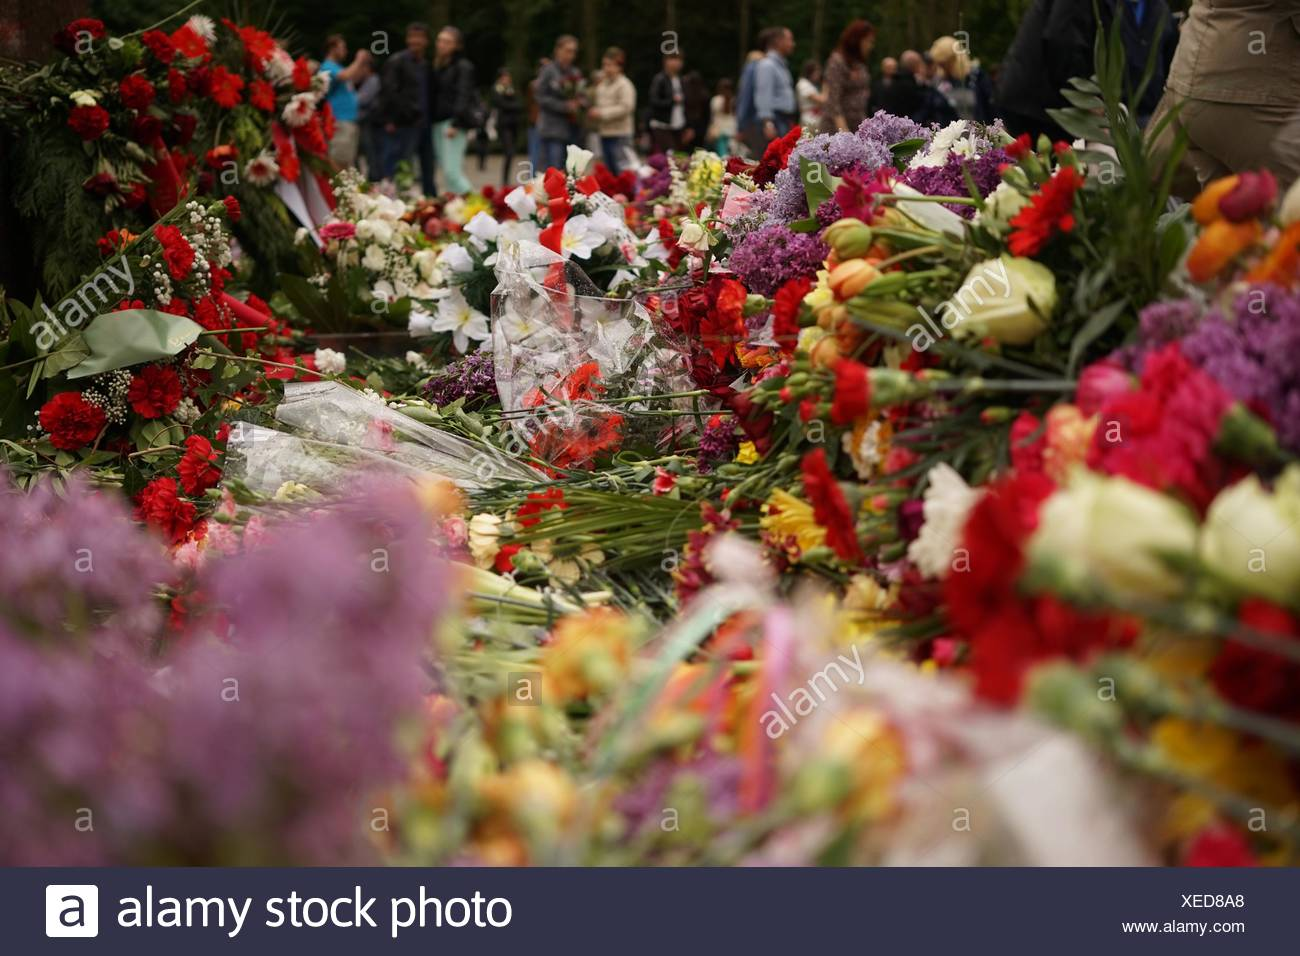 Flower Bouquets For Anniversary Celebration Stock Photo: 284263008 ...